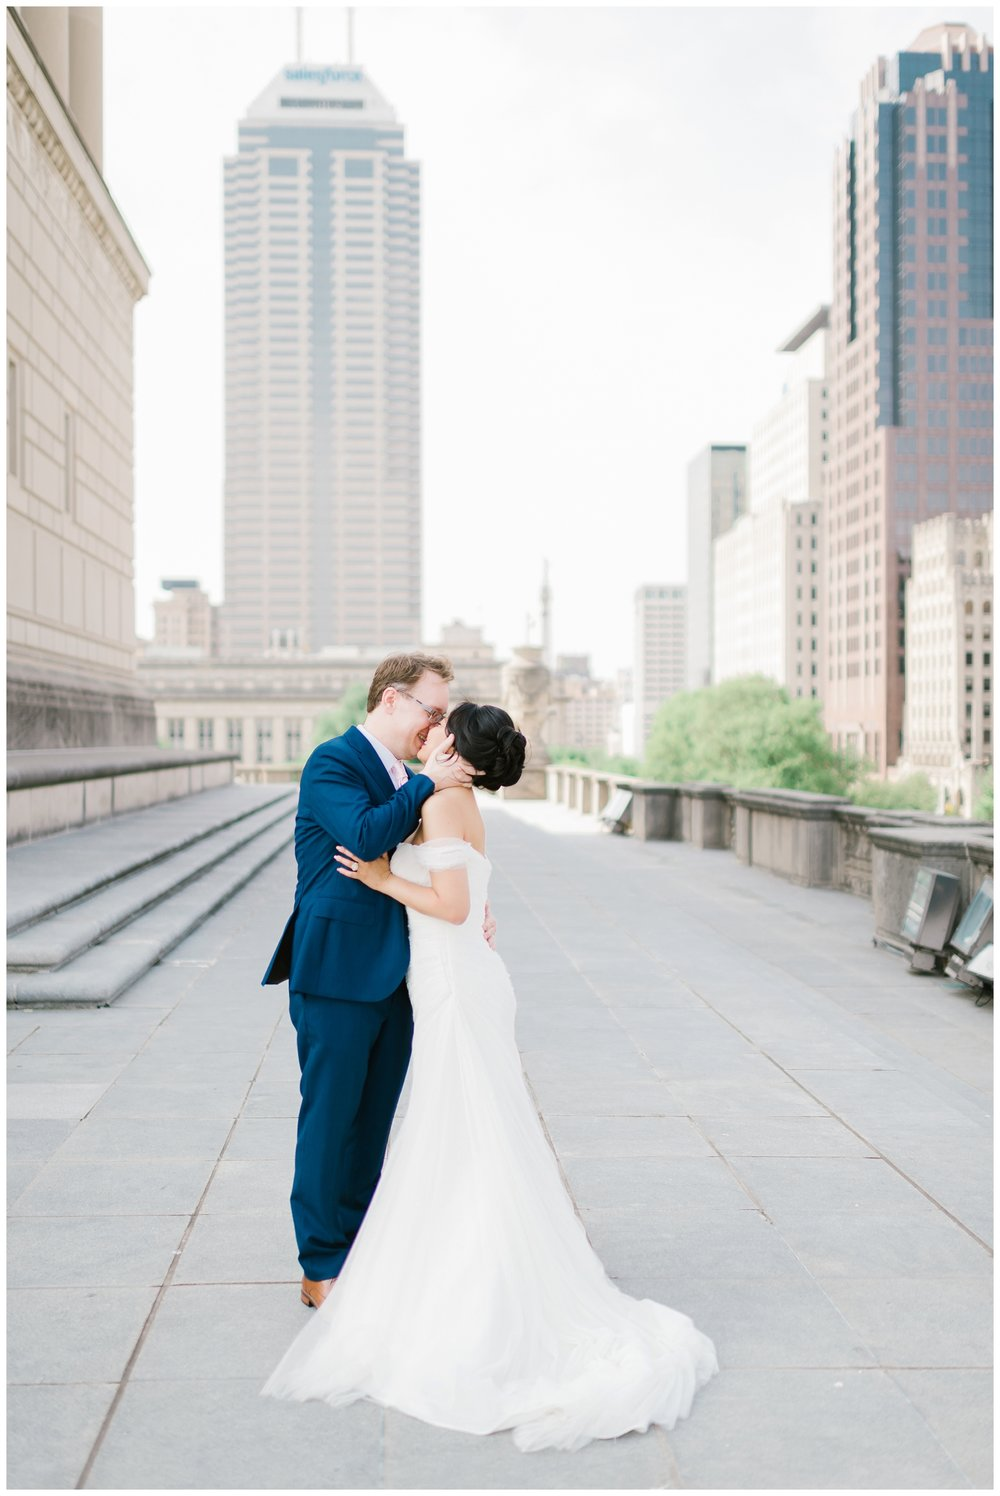 Rebecca_Shehorn_Photography_Indianapolis_Wedding_Photographer_8121.jpg